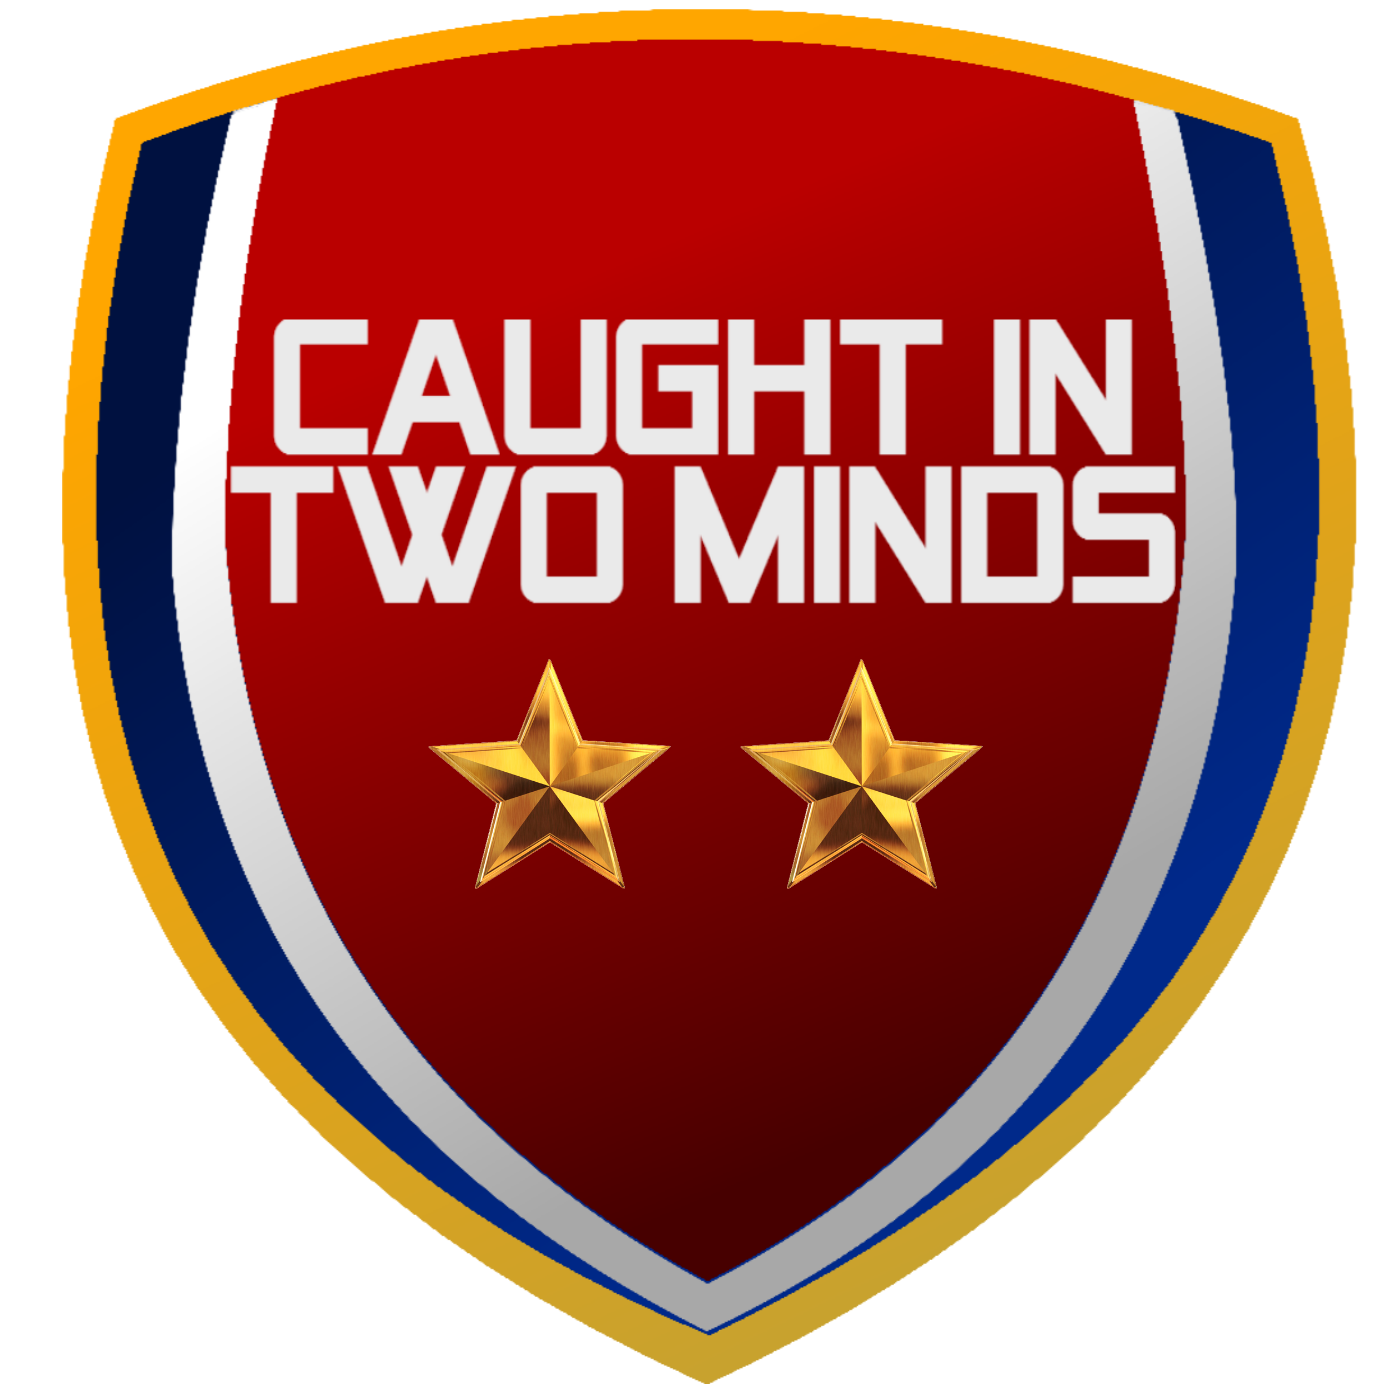 9 - Caught In Two Minds